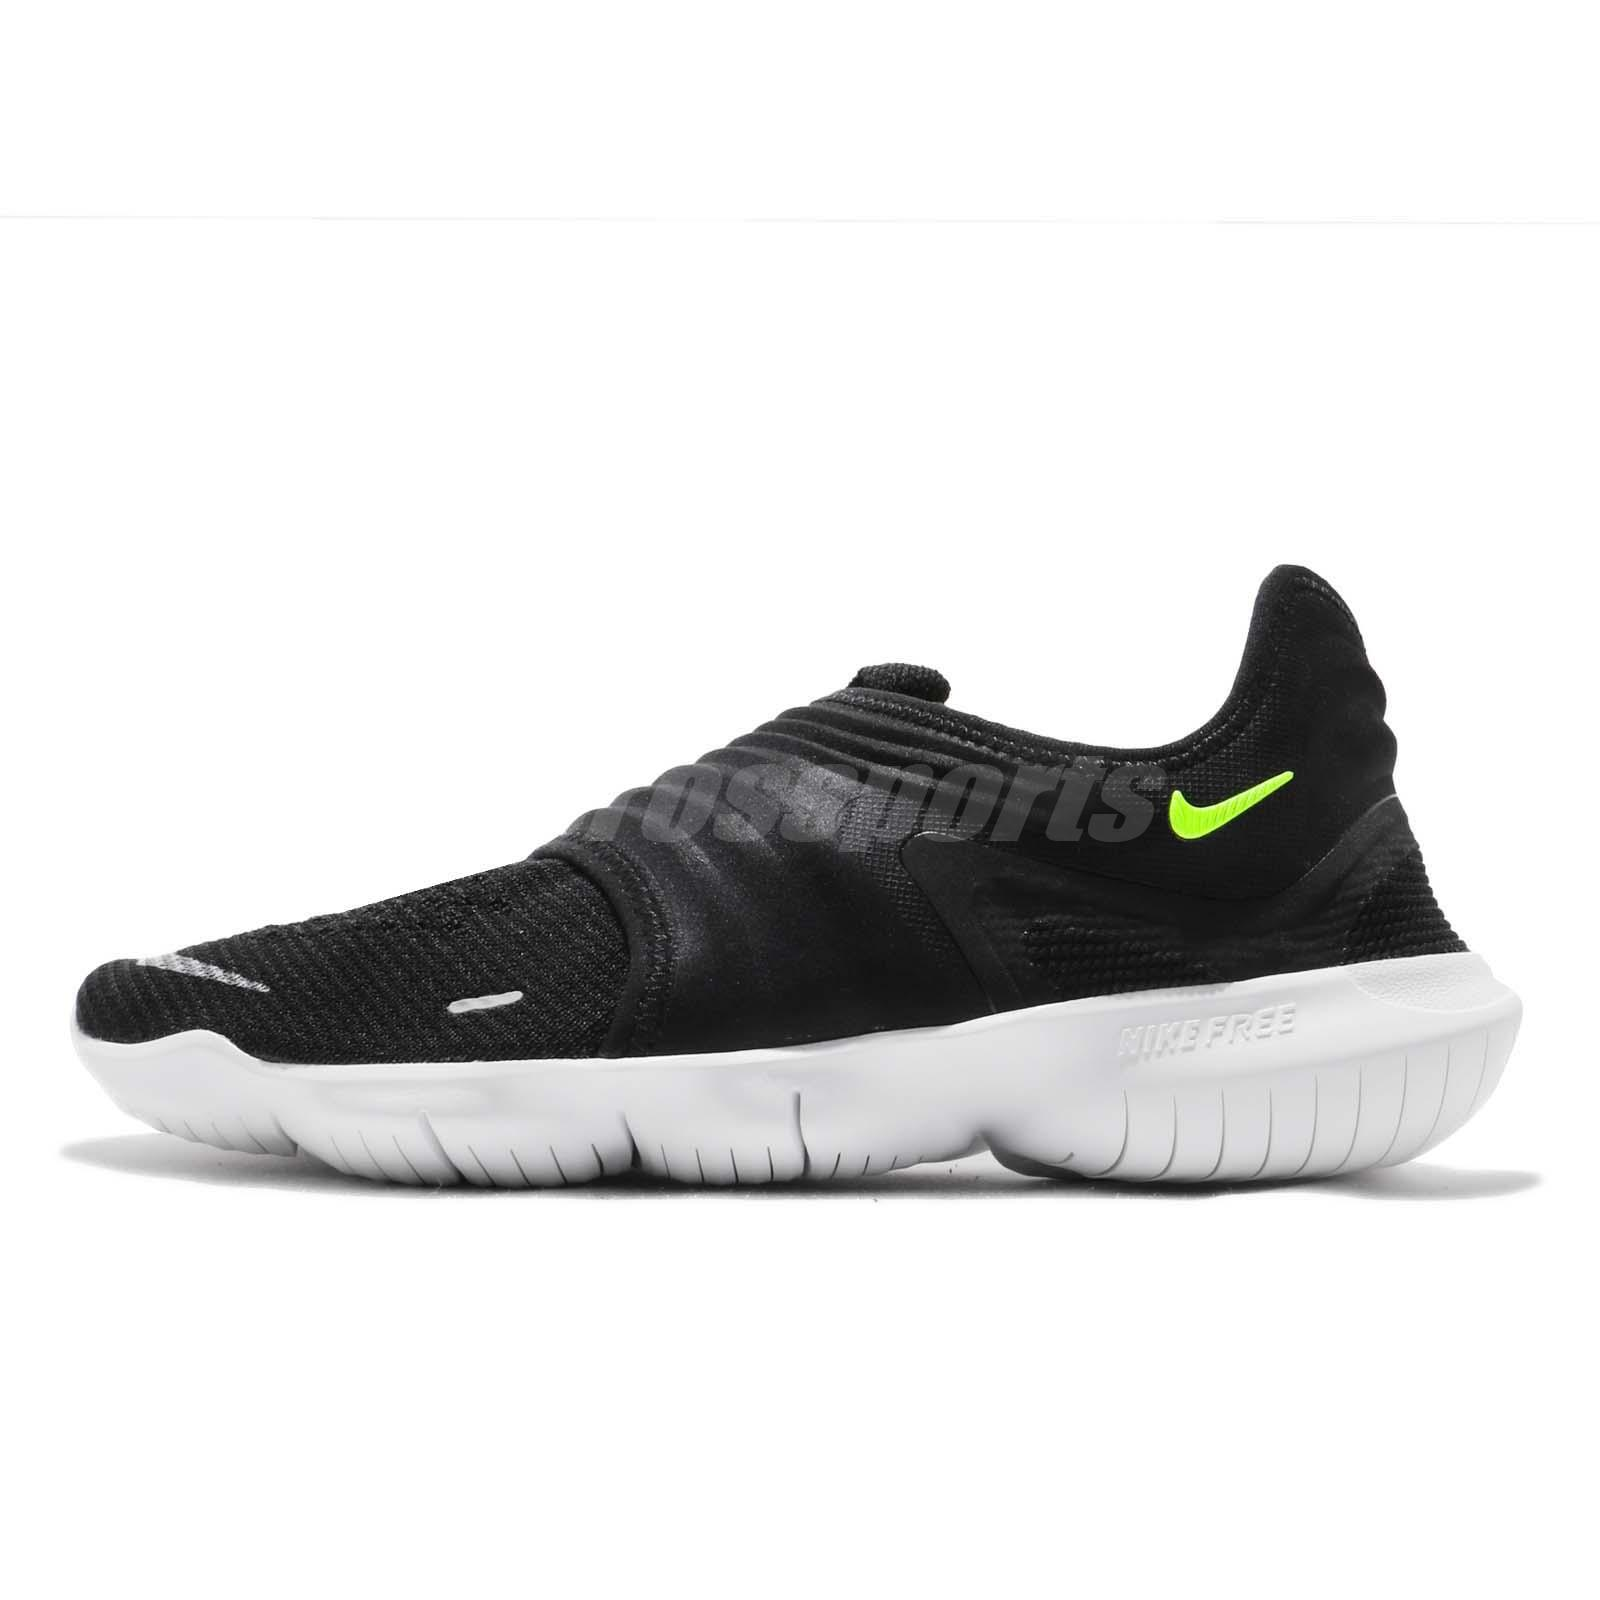 low priced 80be2 be62b Details about Nike Free RN Flyknit 3.0 Black Volt White Men Running Shoes  Sneakers AQ5707-001